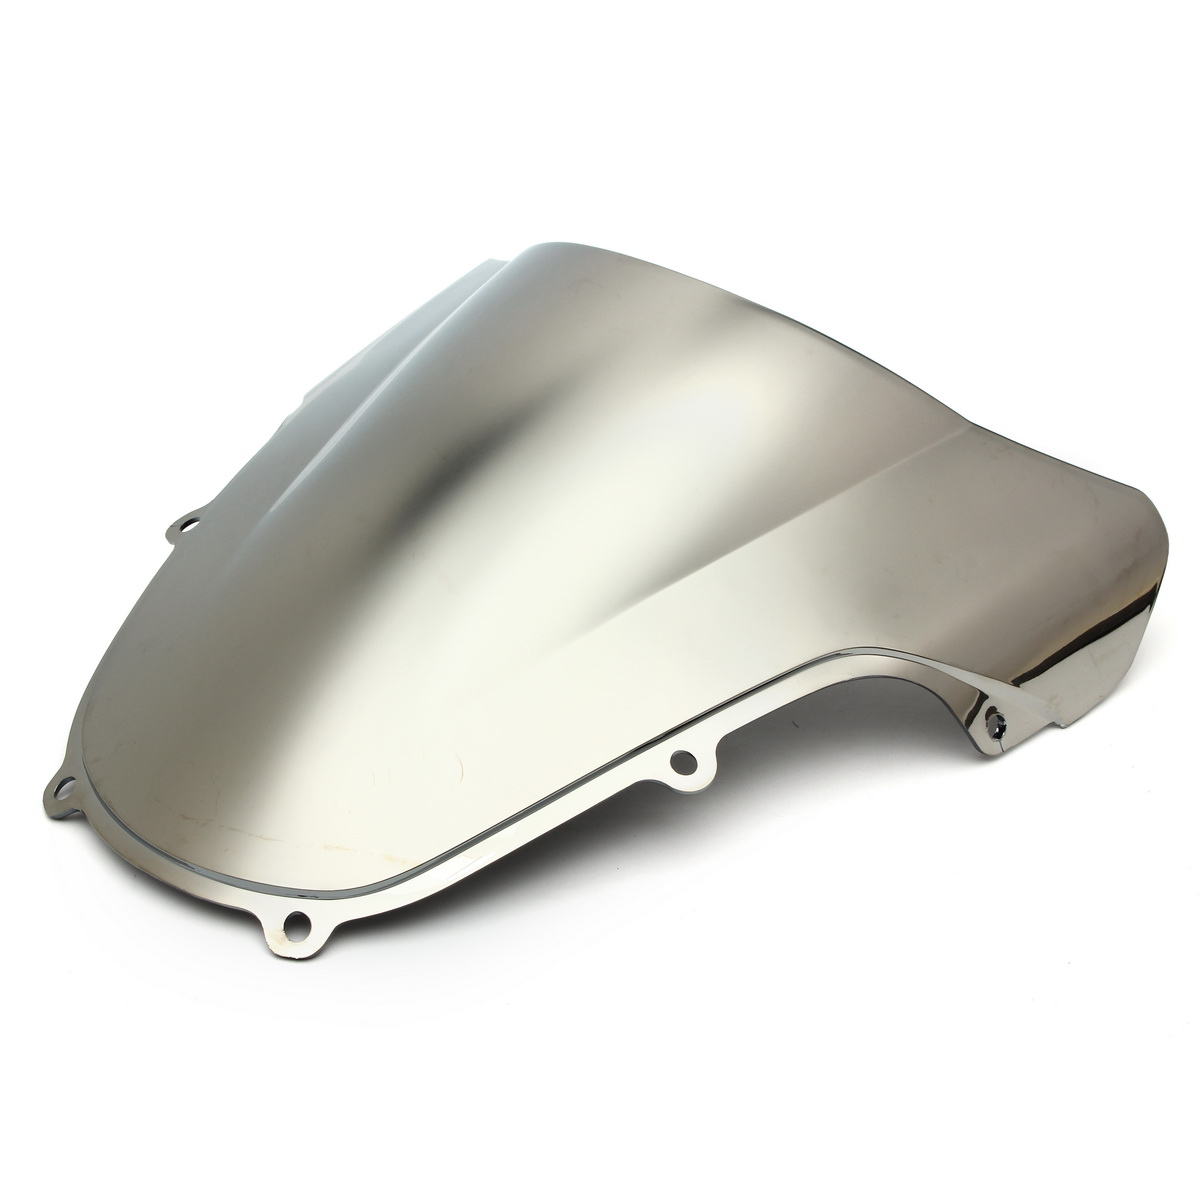 Wind Shield Windscreedn For Suzuki GSXR600 GSXR1000 200